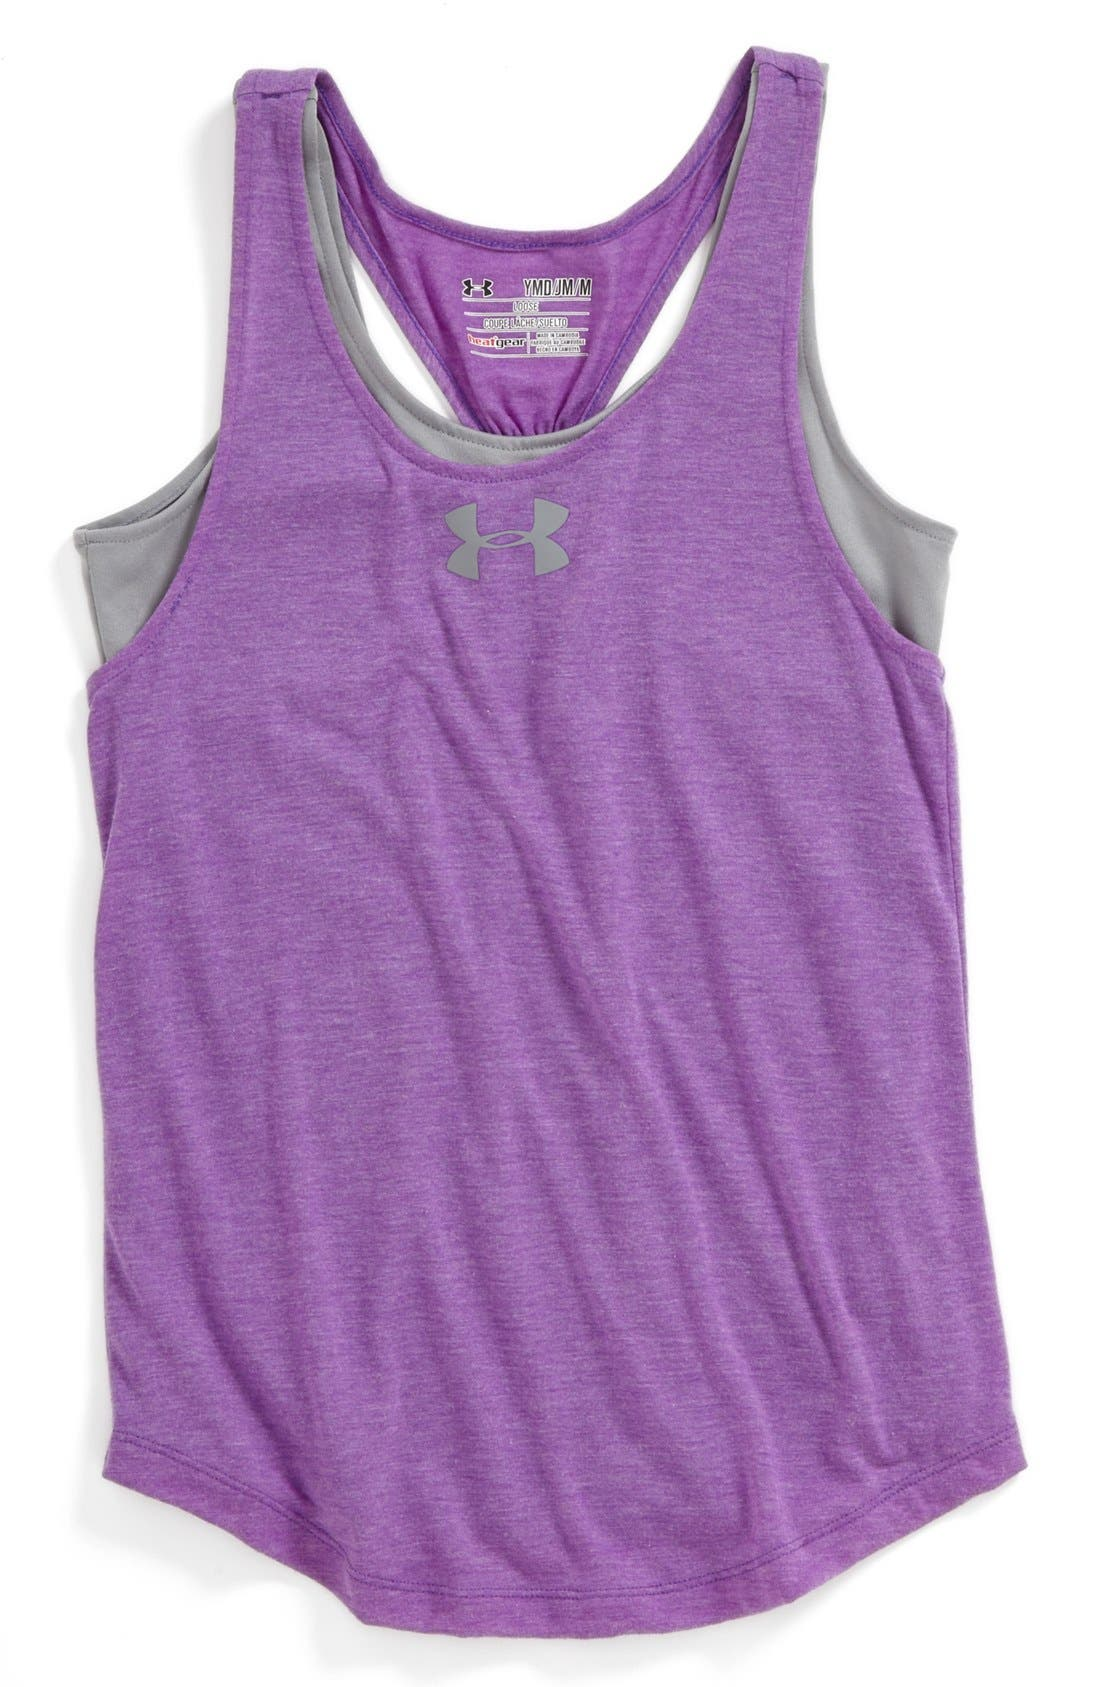 Main Image - Under Armour 'Double the Fun' Tank Top (Big Girls)